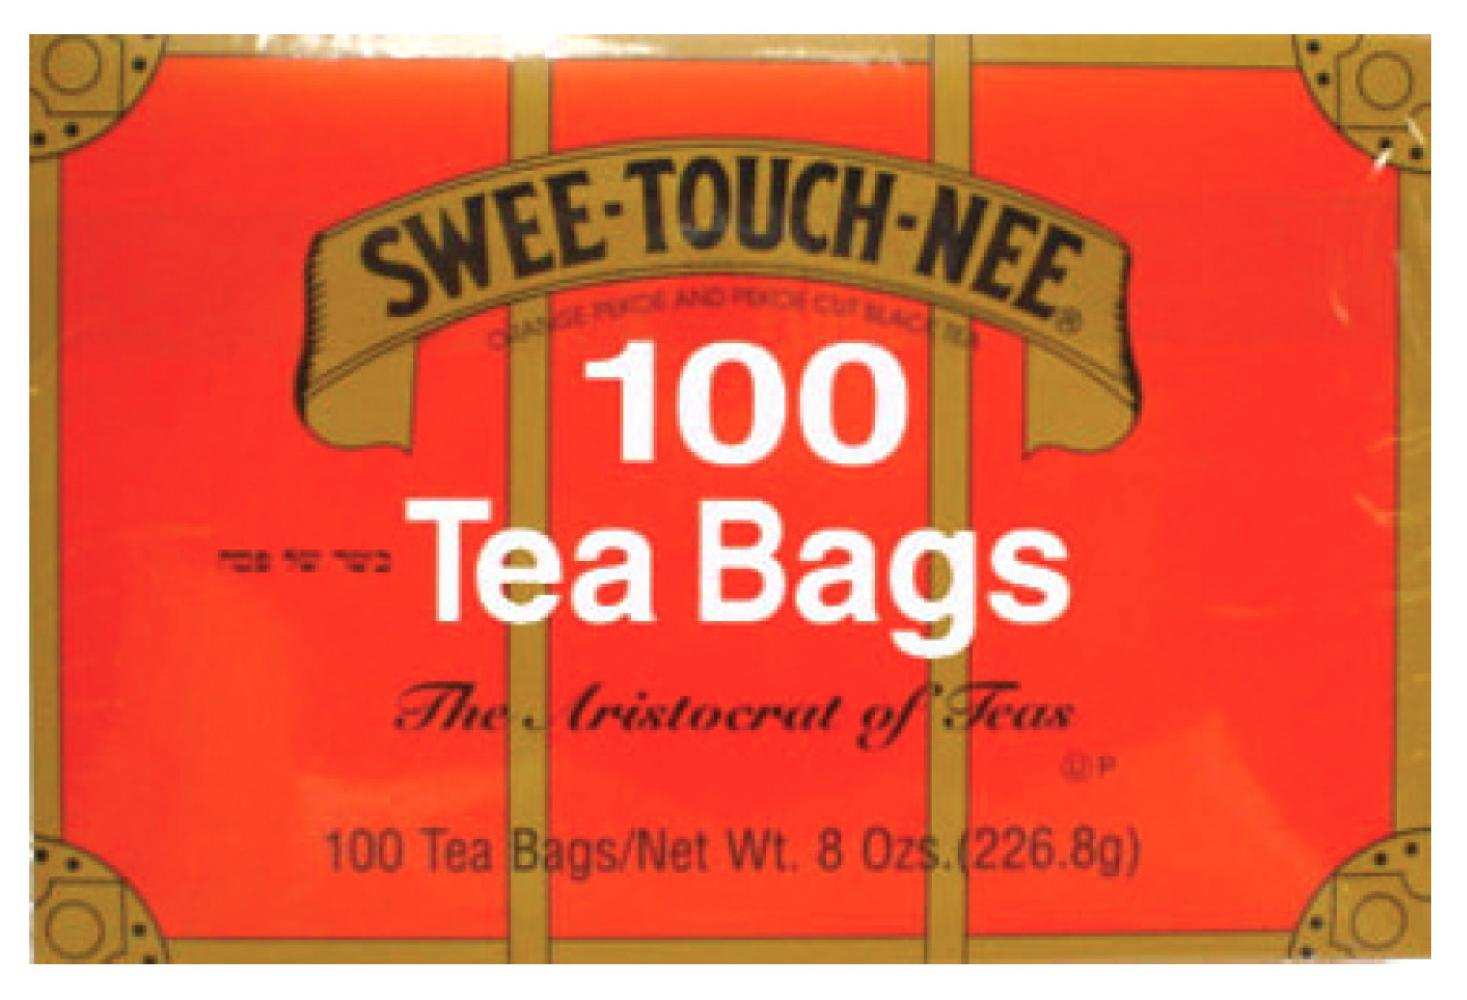 Sweet-Touch-Nee 100 Tea Bags 8 oz